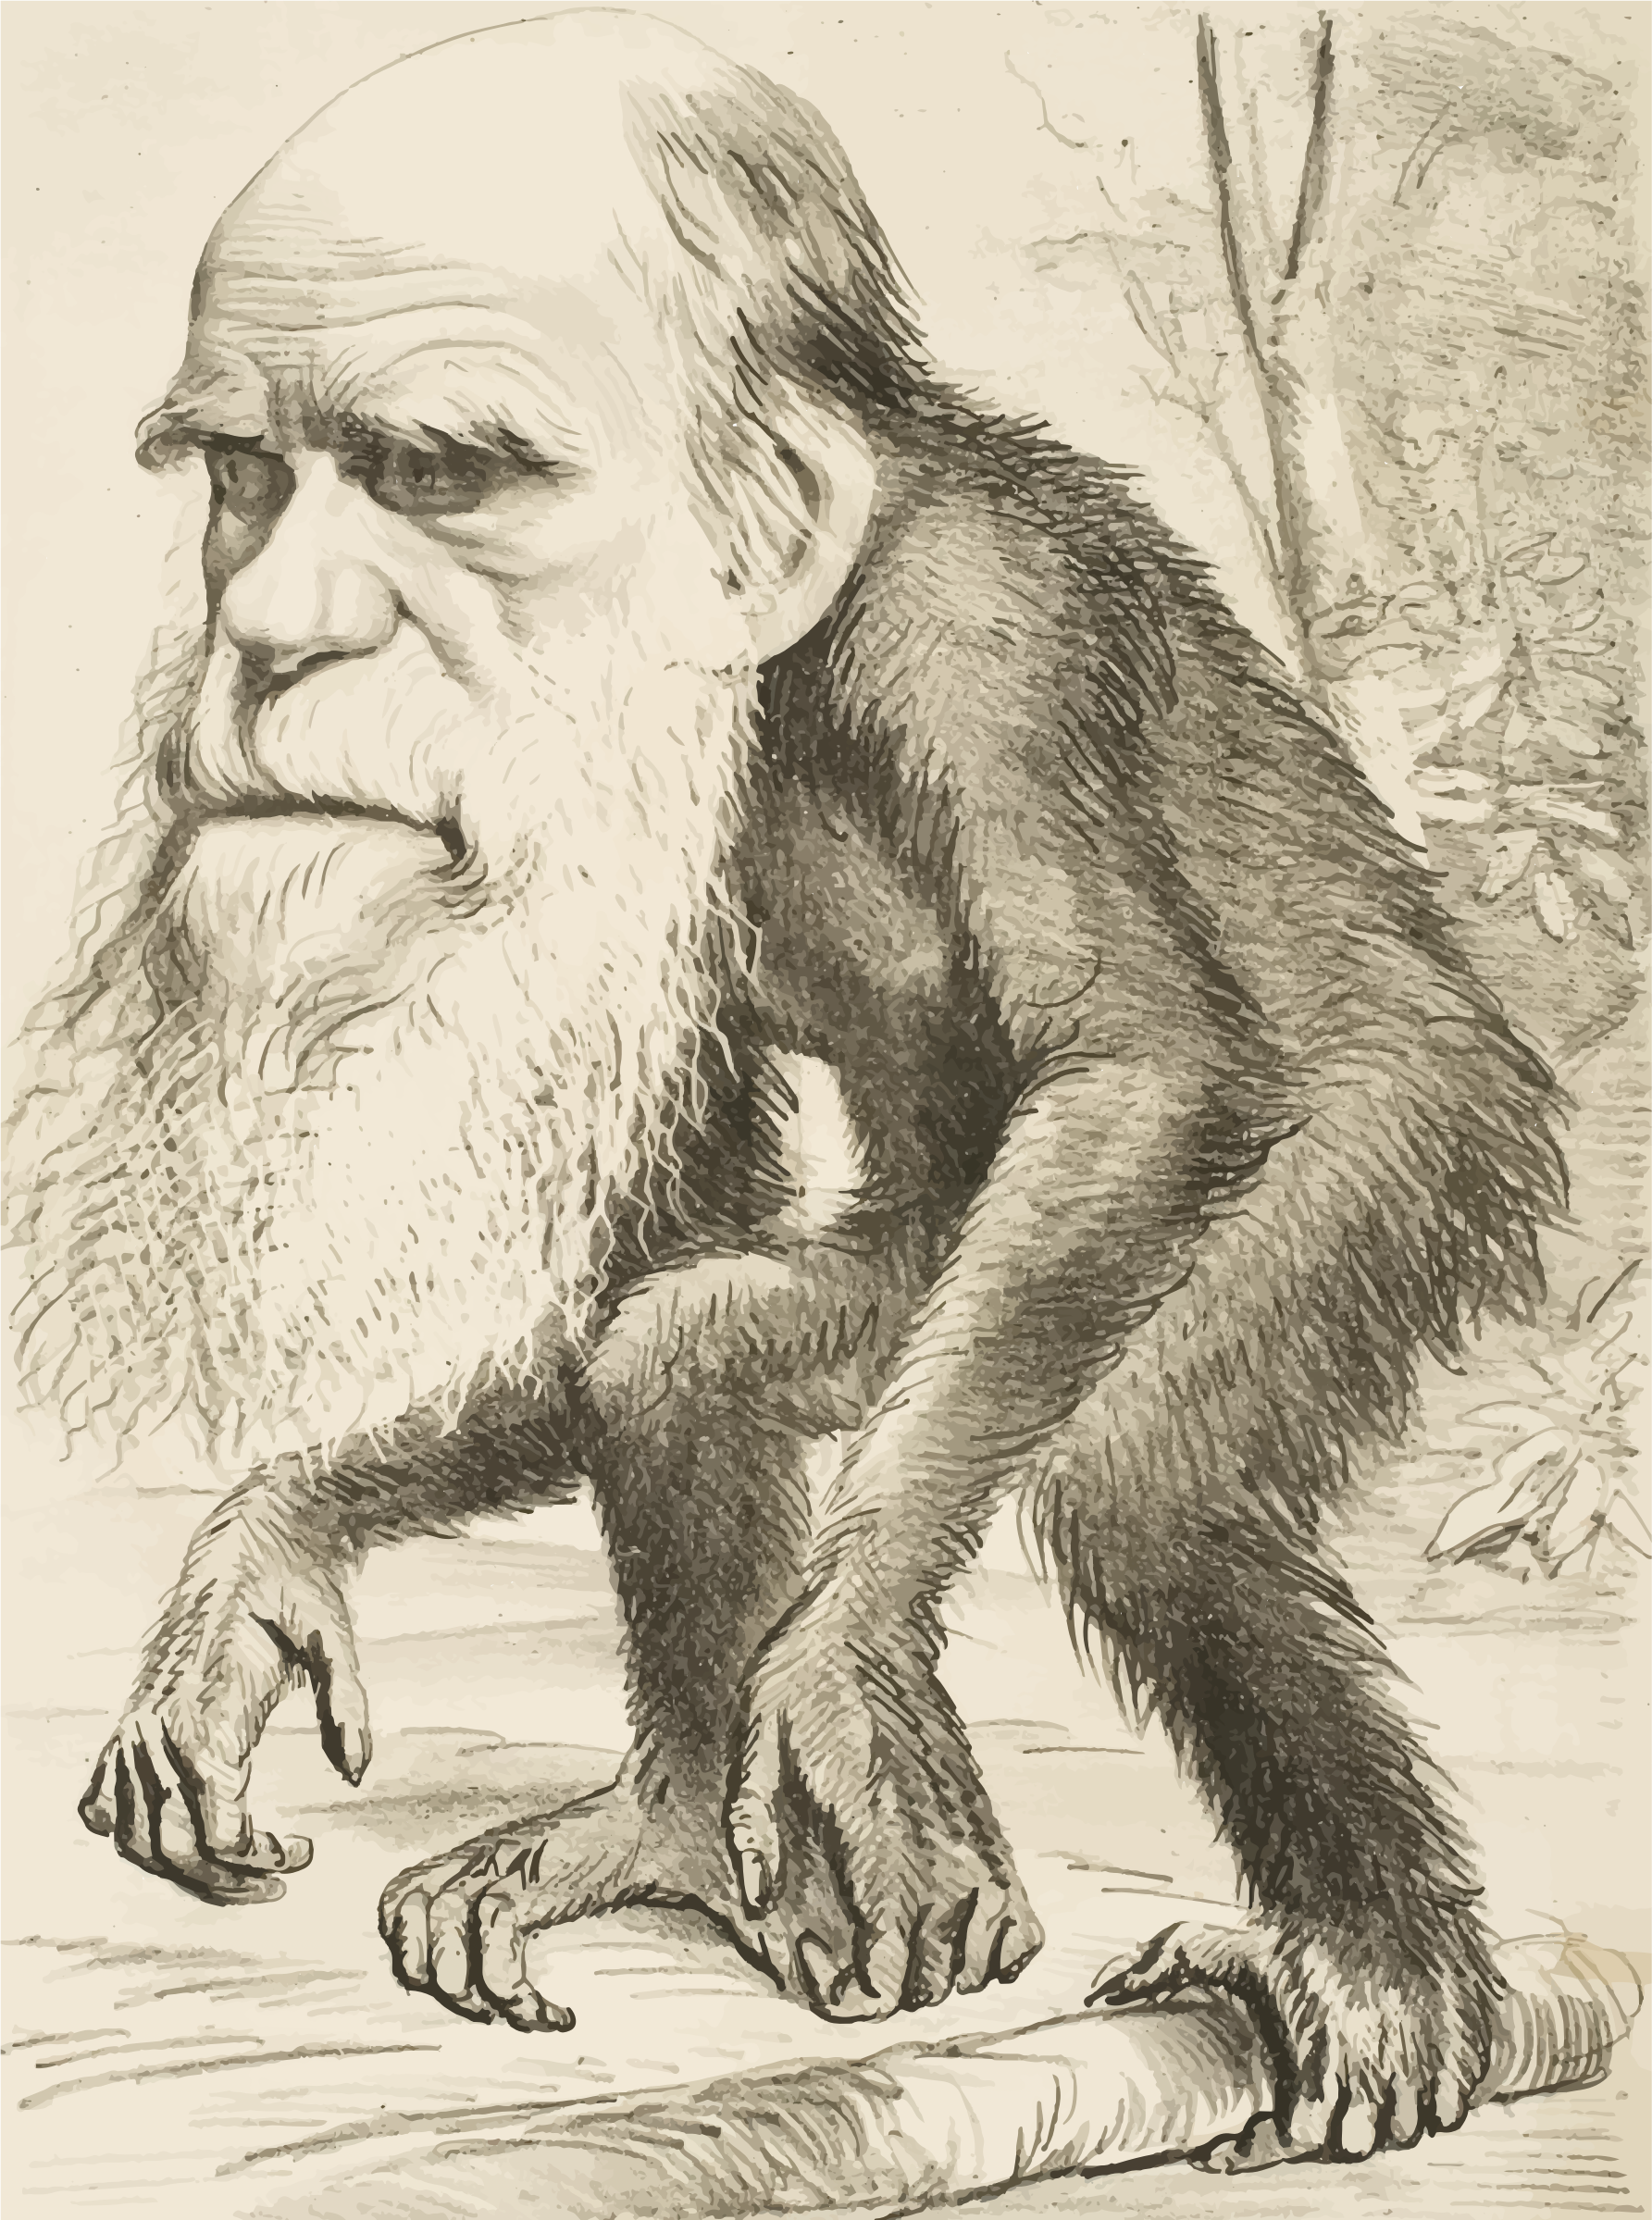 Editorial Cartoon Depicting Charles Darwin As An Ape 1871 by GDJ